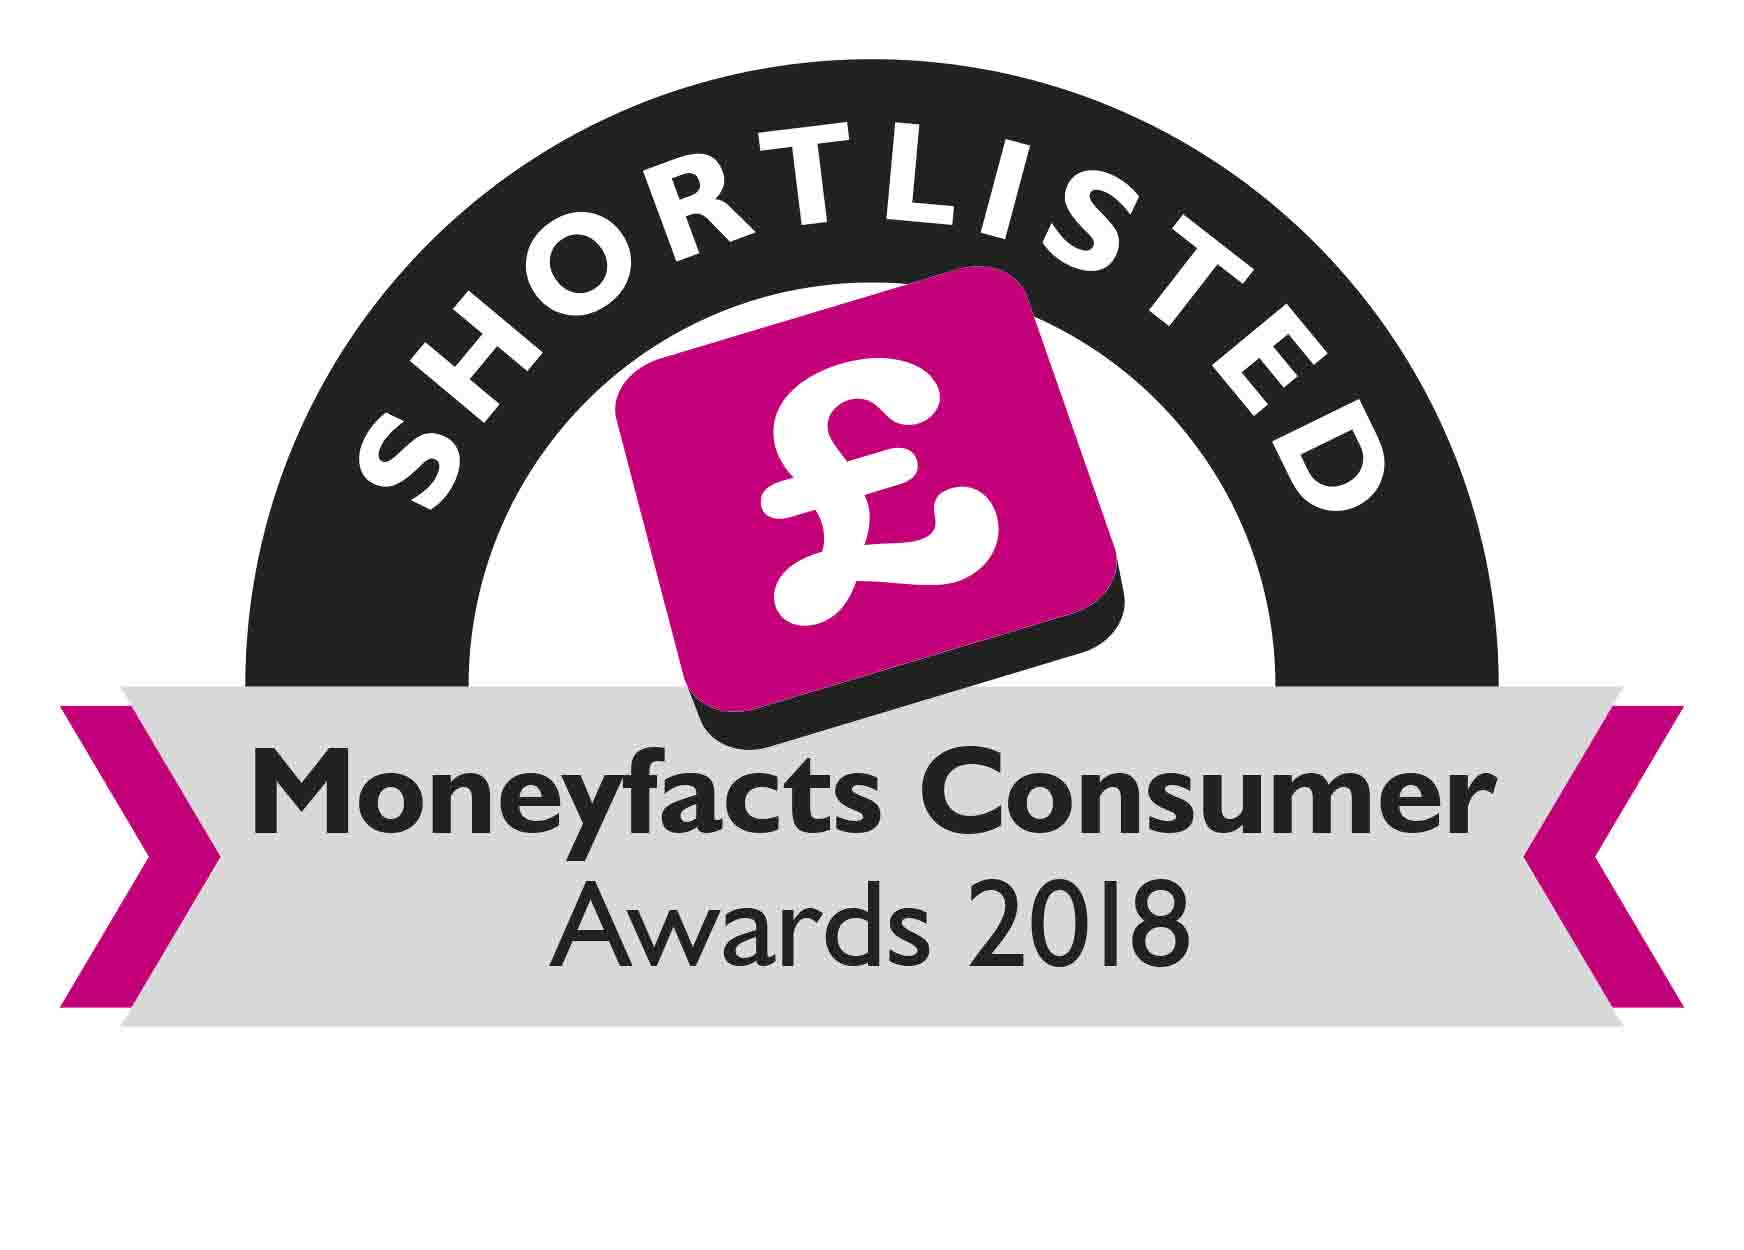 Moneyfacts Shortlist Awards